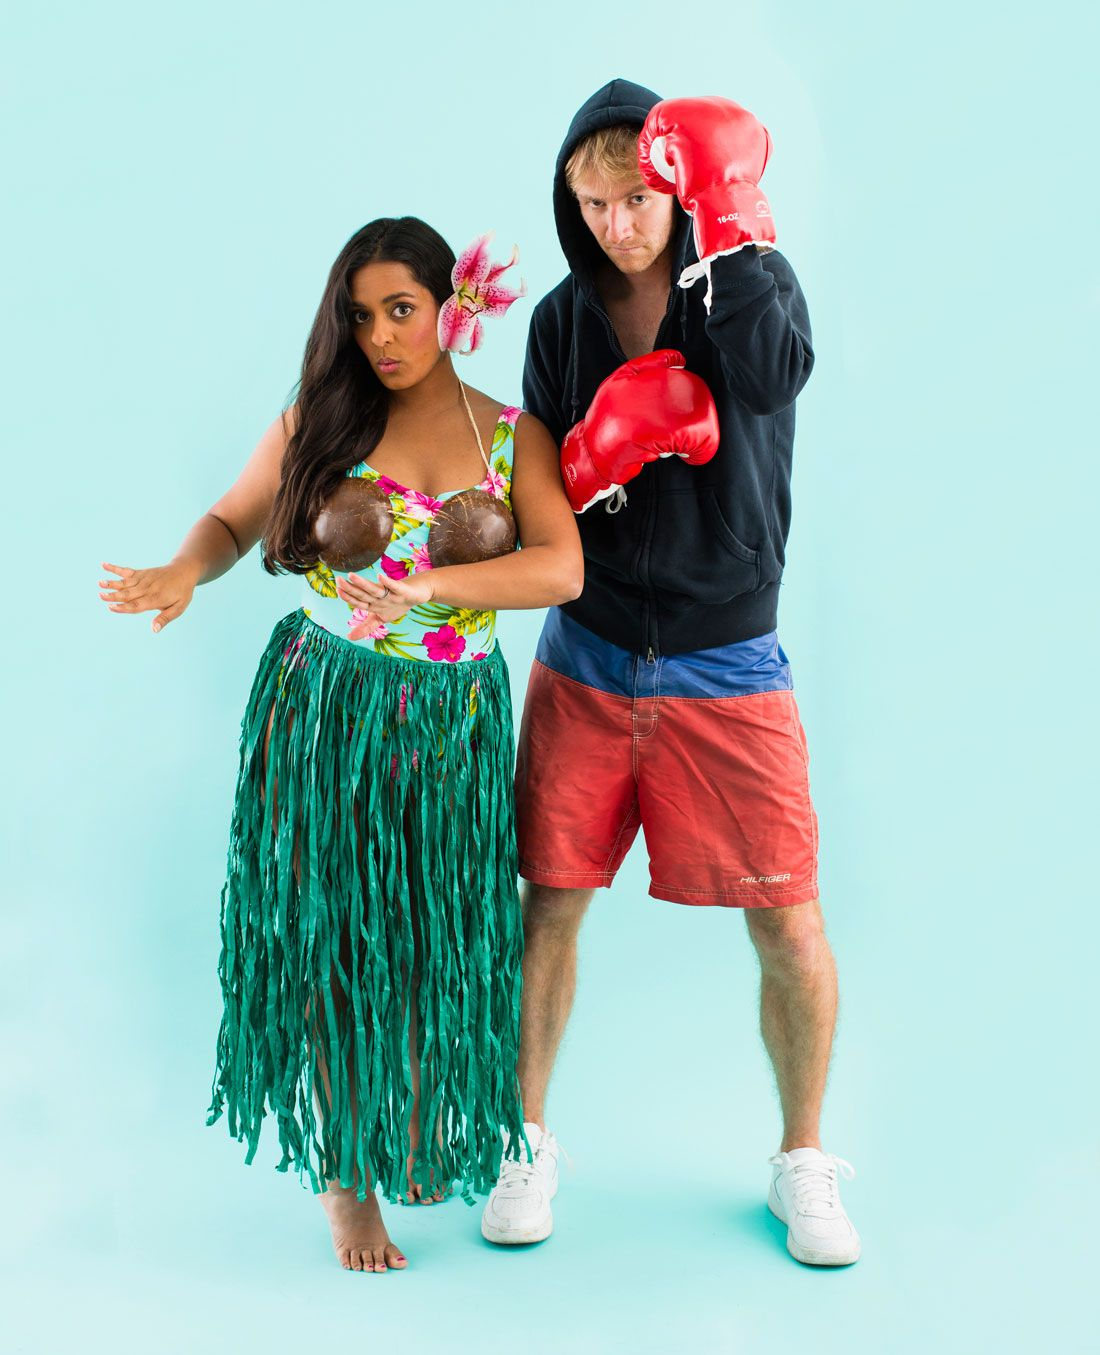 8 All-New DIY Couples Halloween Costumes | Diy couples costumes ...